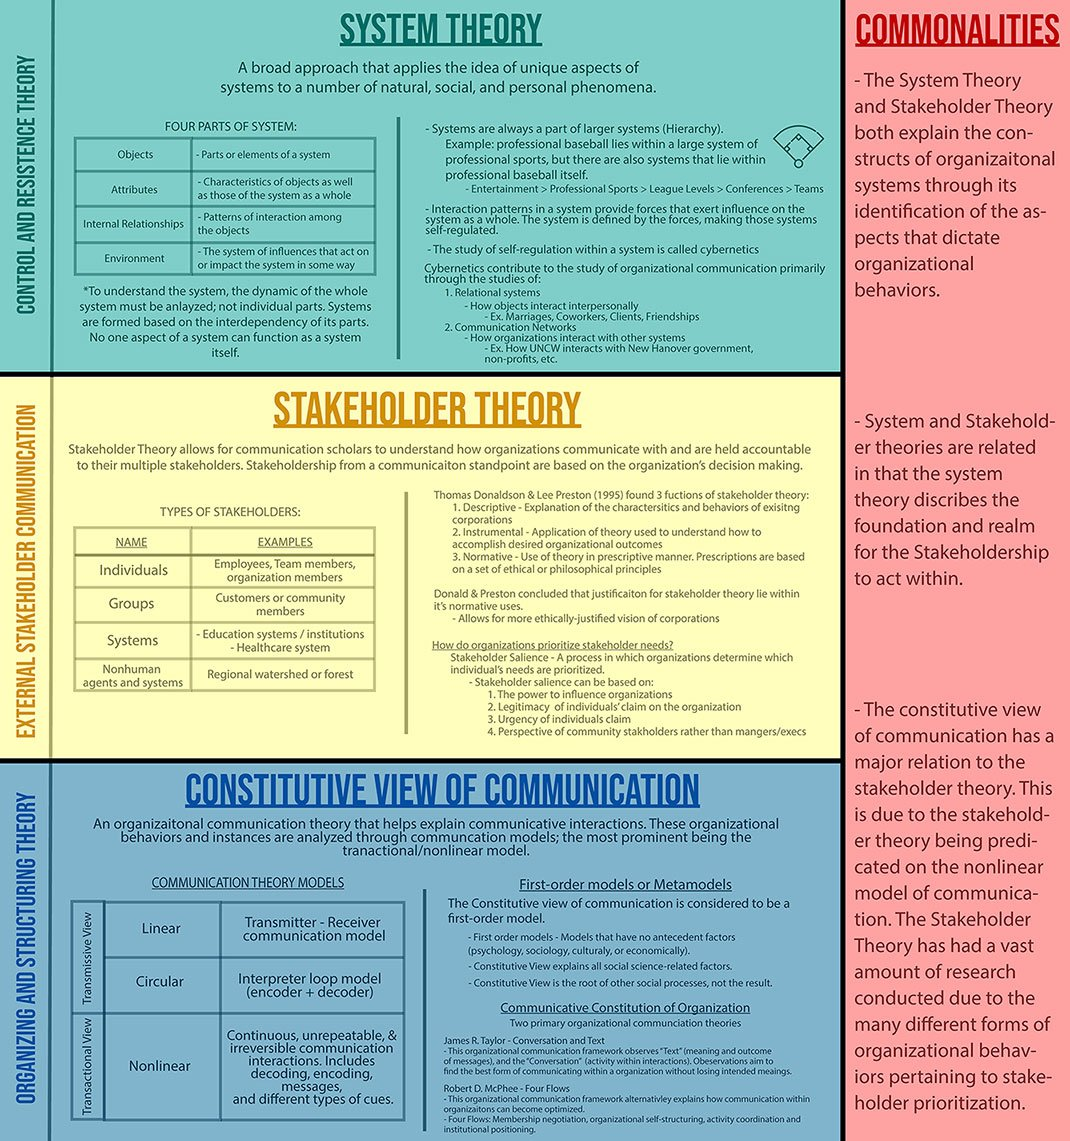 Constitutive View of Communication, System Theory, and Stakeholder Theory